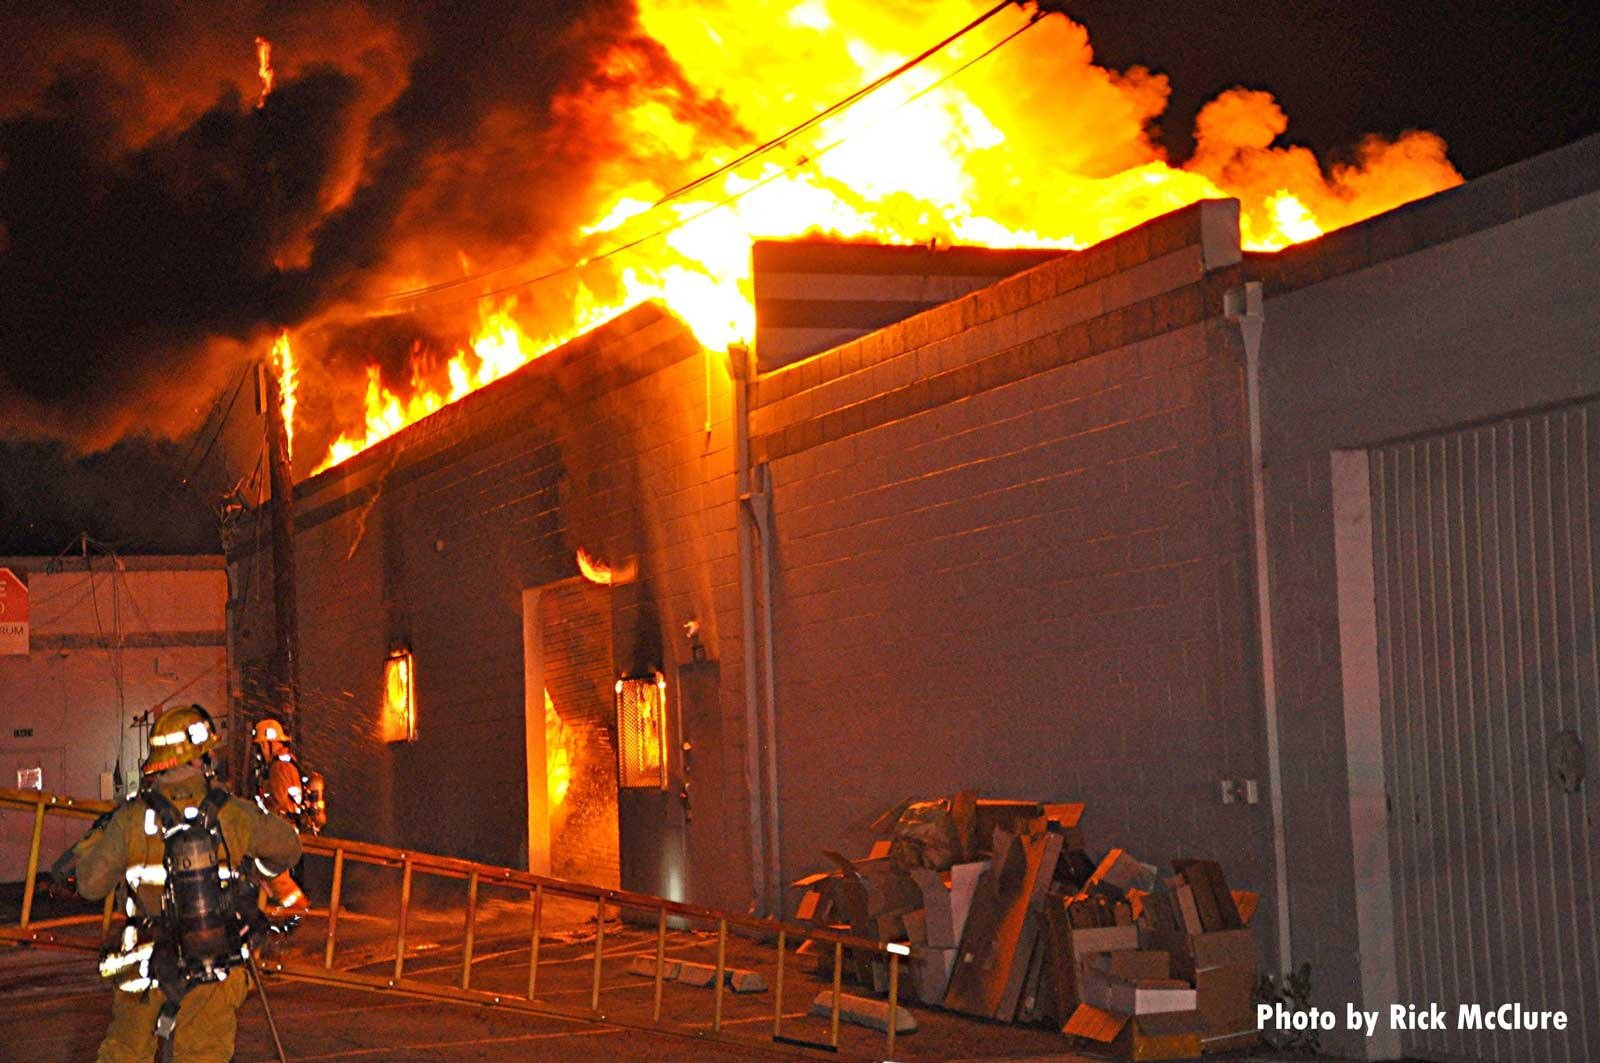 Shot of flames shooting through the roof of the building